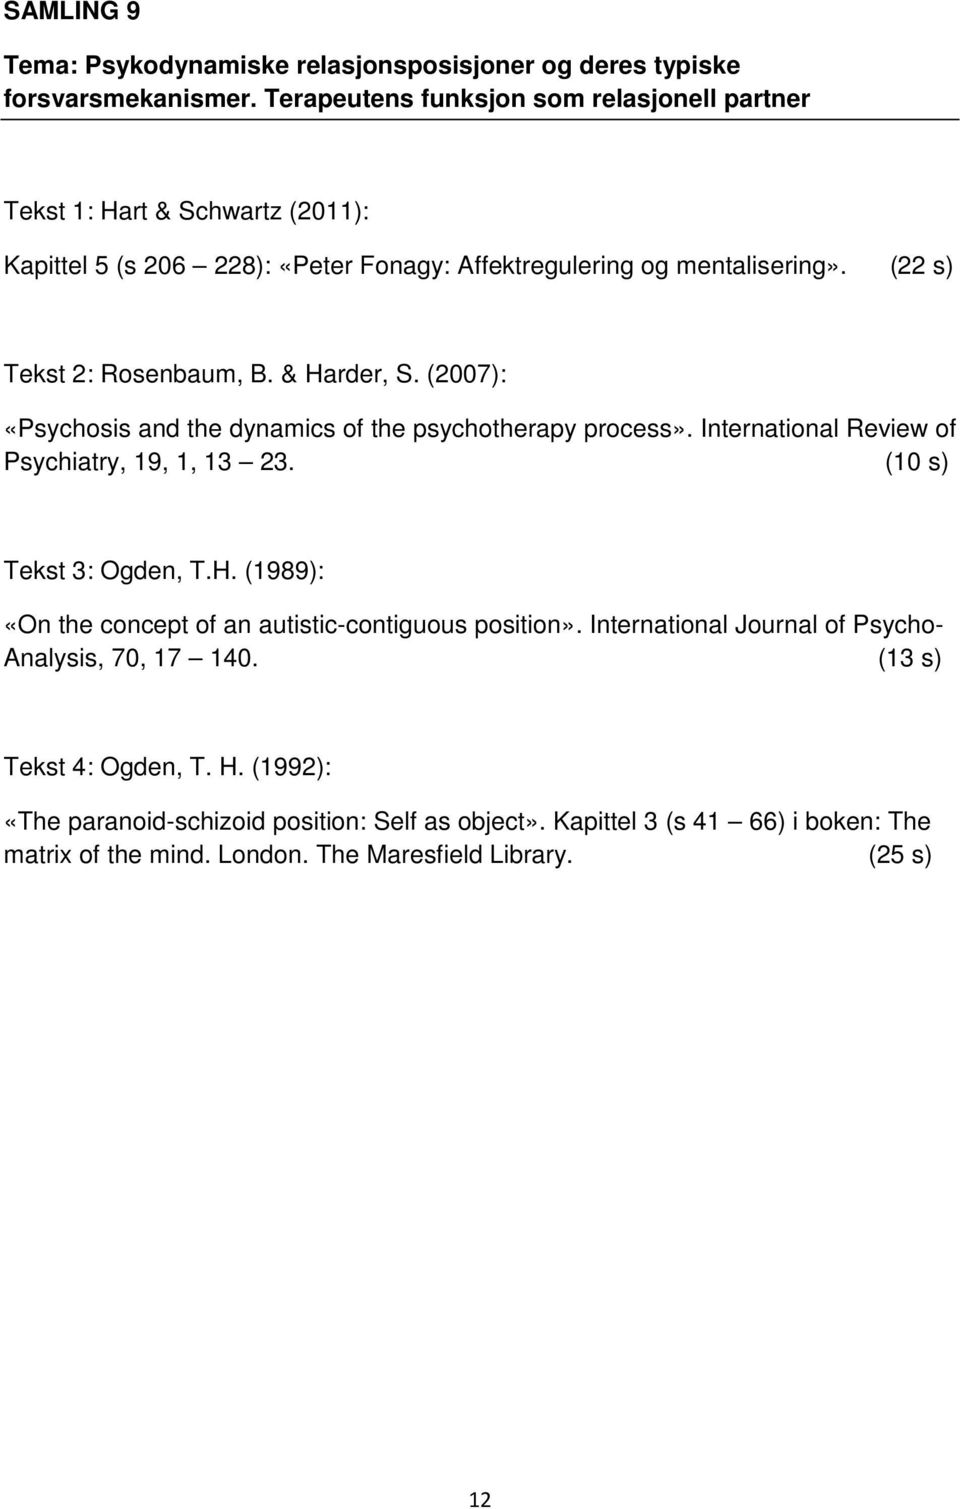 & Harder, S. (2007): «Psychosis and the dynamics of the psychotherapy process». International Review of Psychiatry, 19, 1, 13 23. (10 s) Tekst 3: Ogden, T.H. (1989): «On the concept of an autistic-contiguous position».